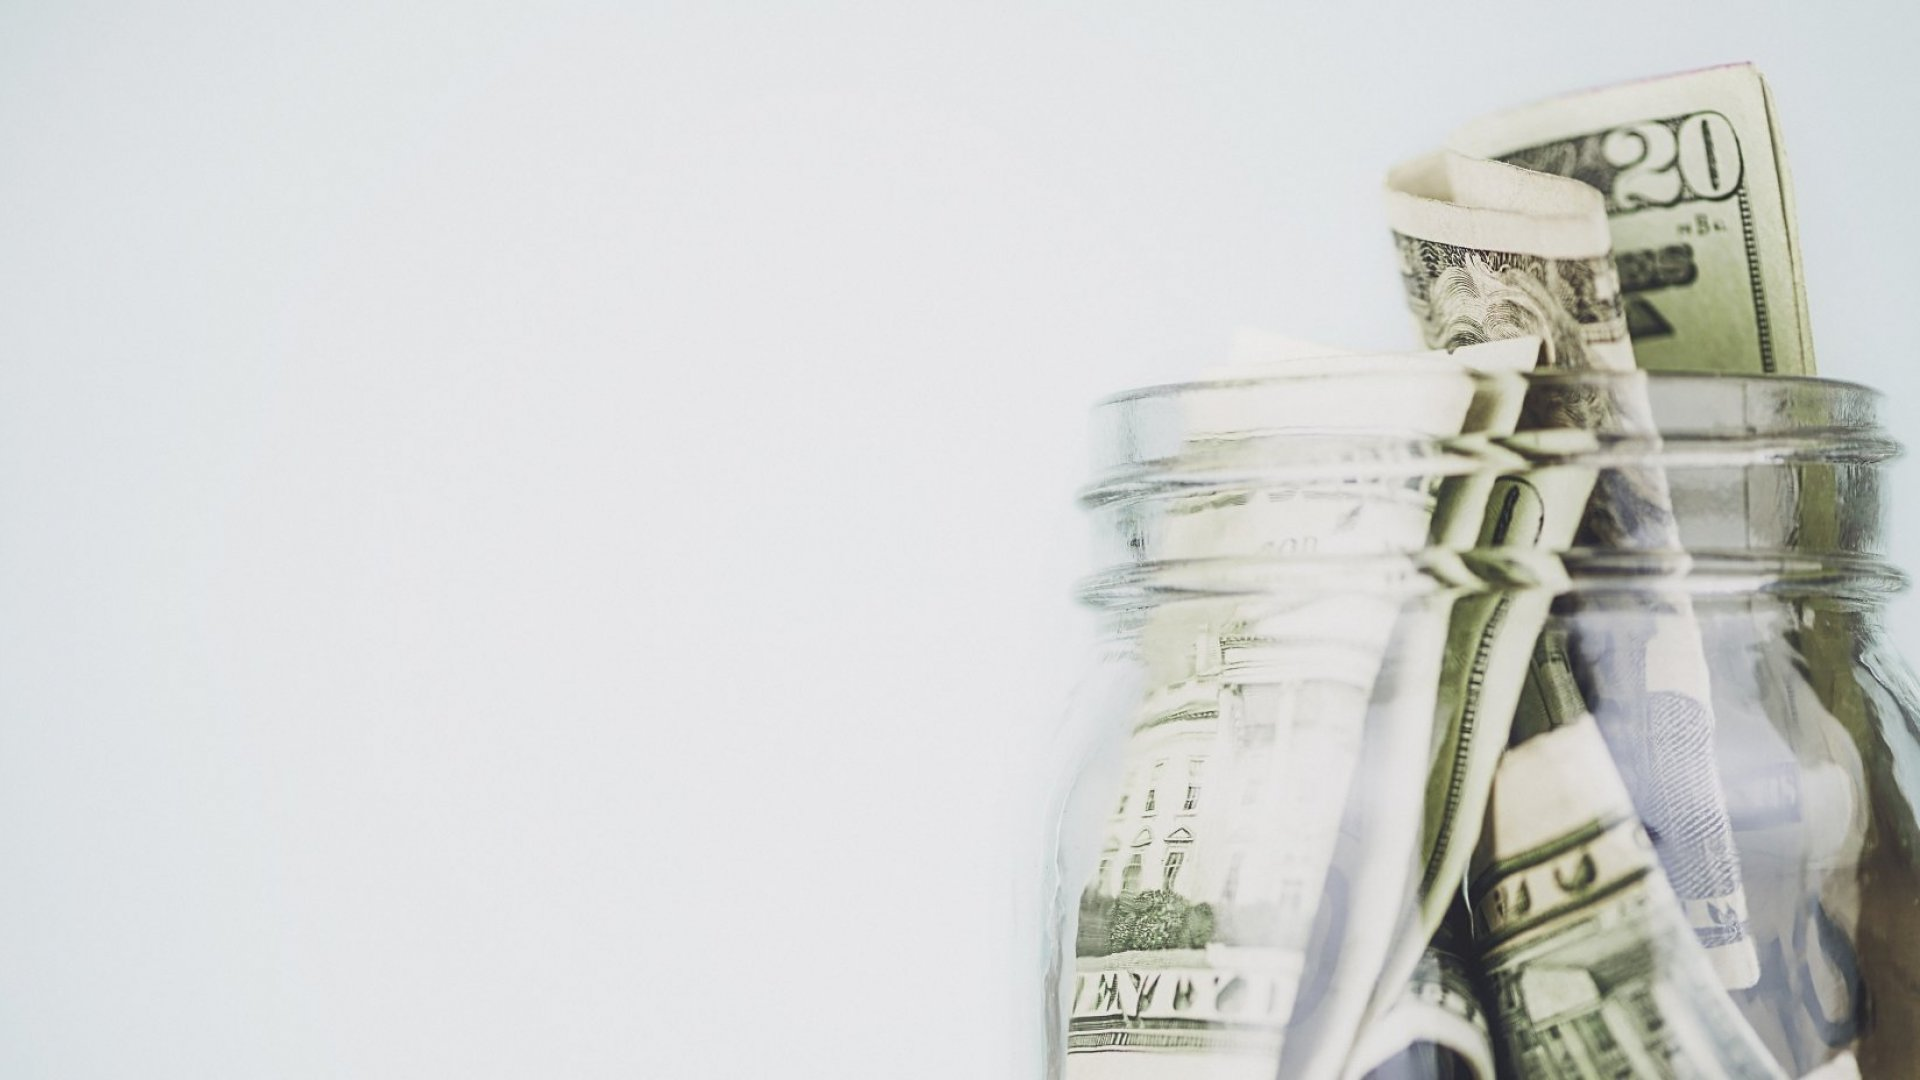 What You Need to Know About Using Your 401(k) to Start a Business